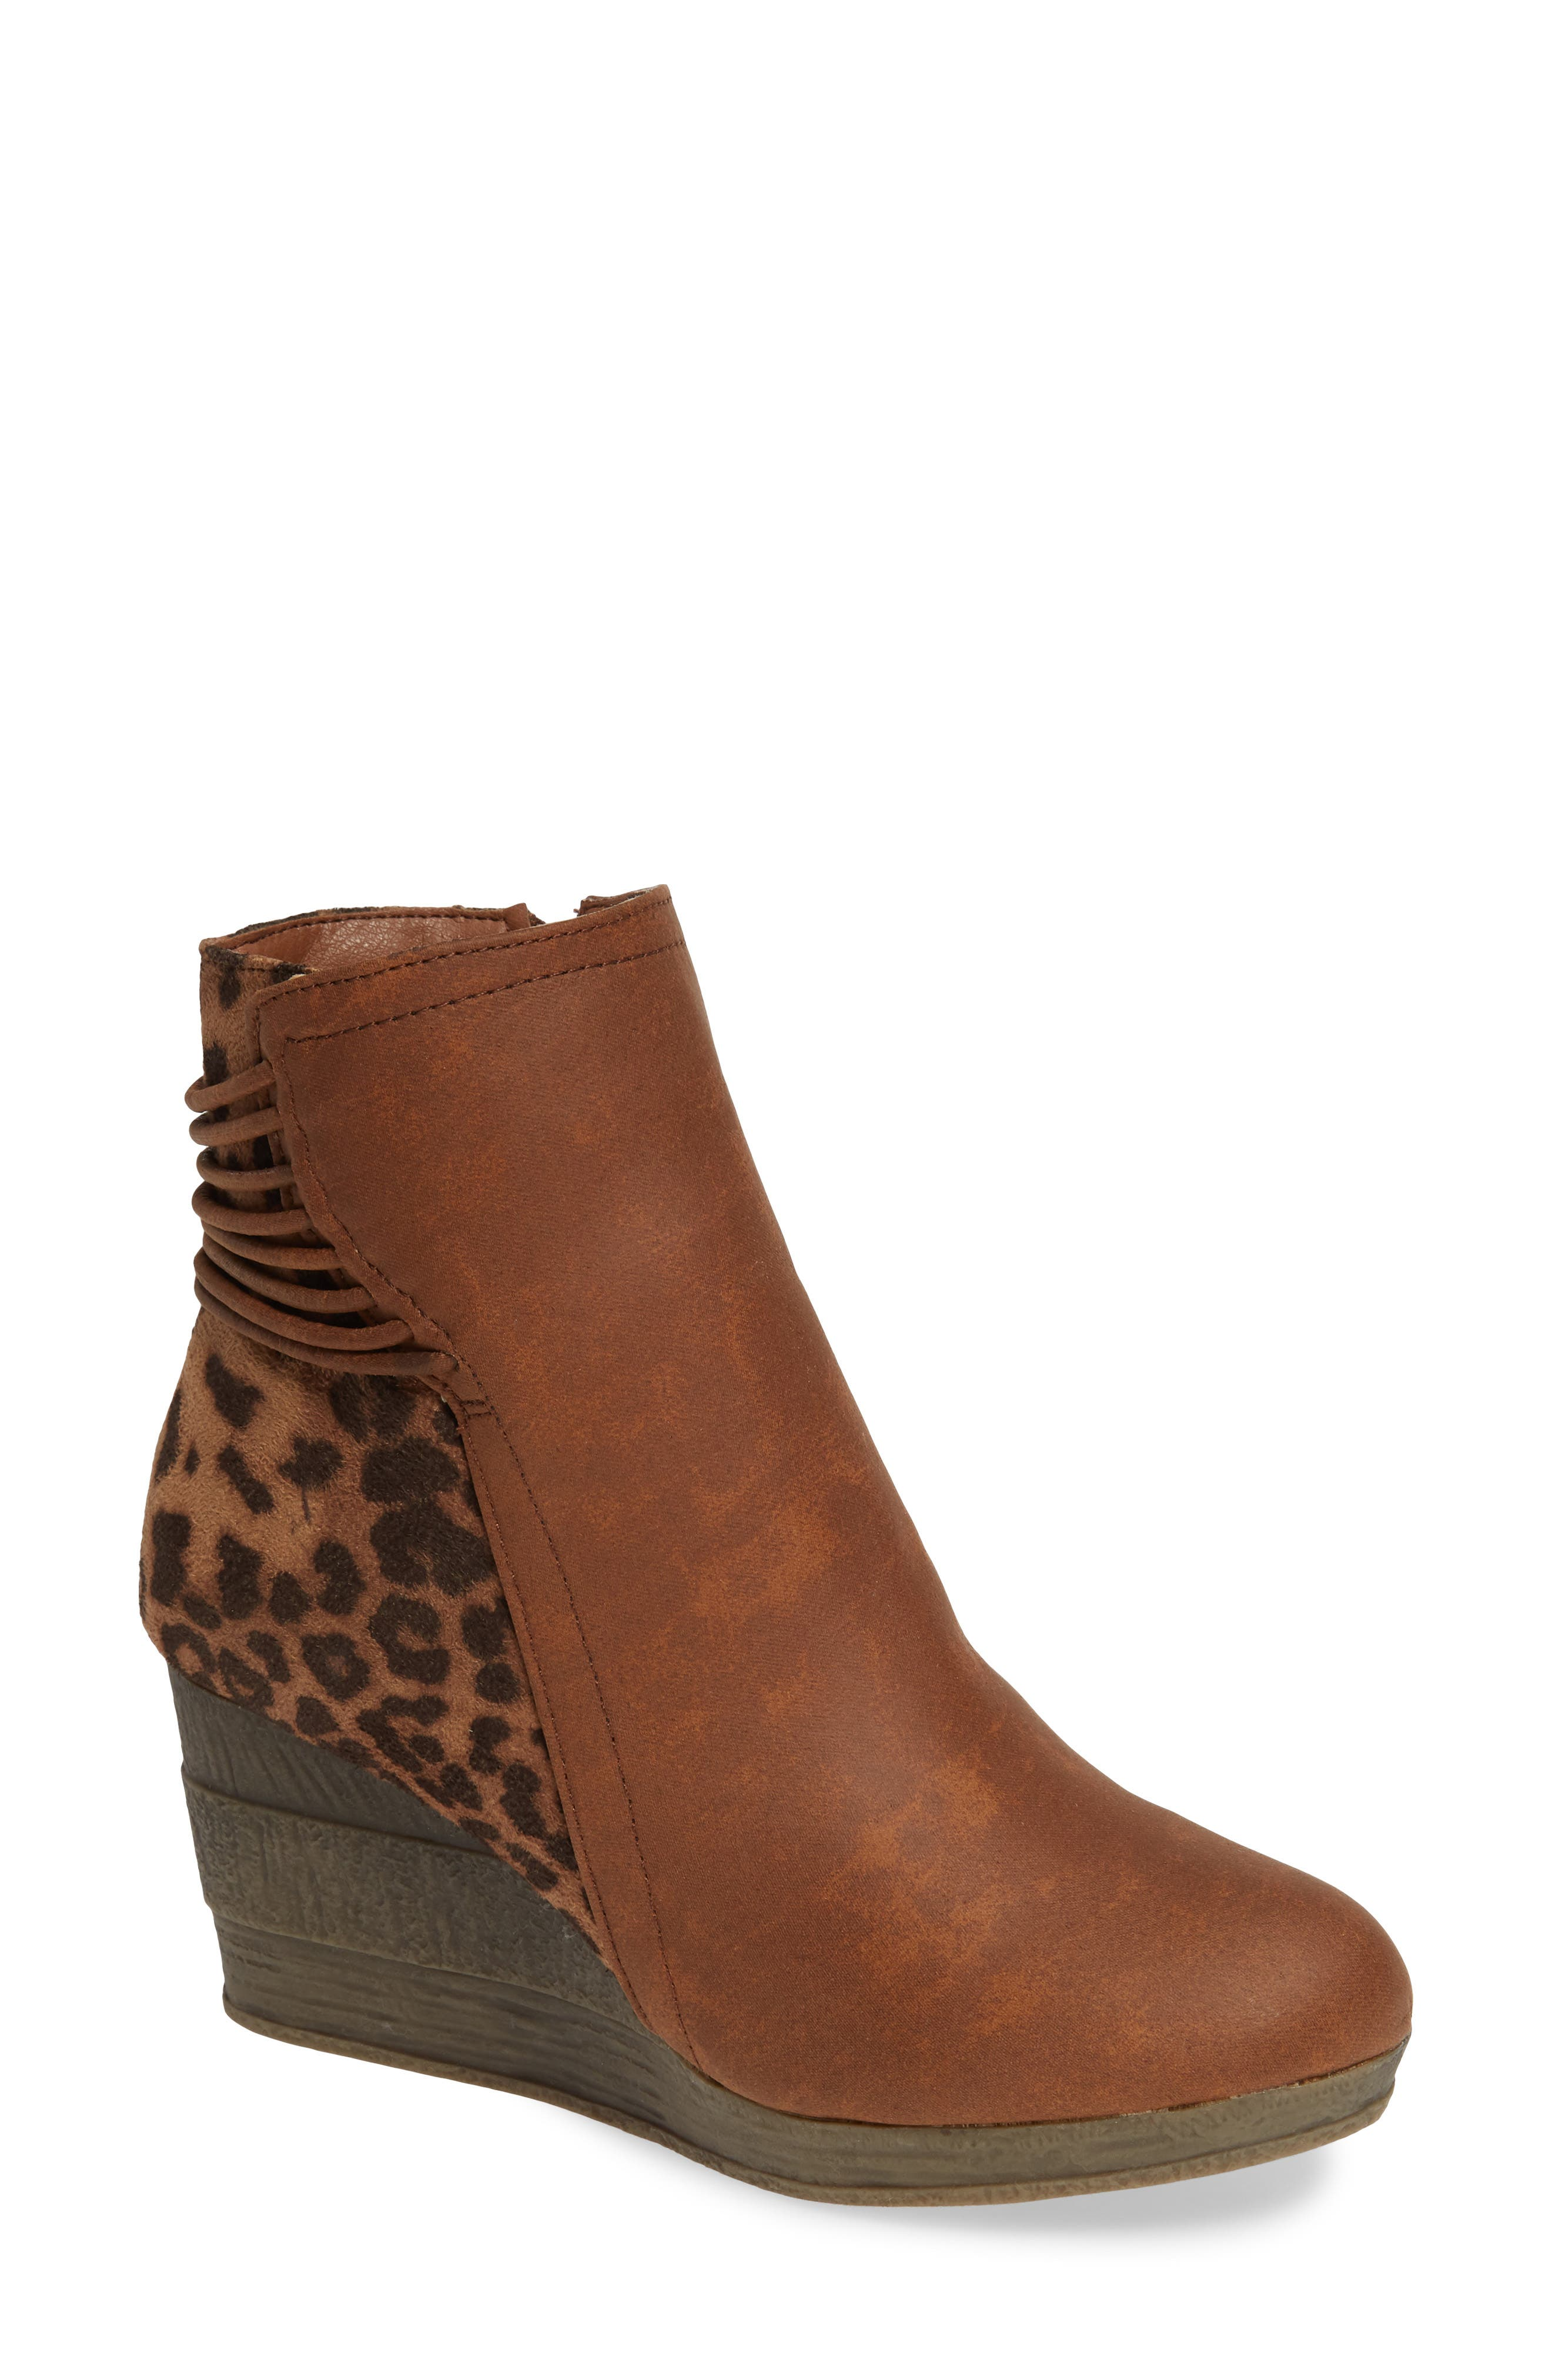 SBICCA Colleen Wedge Boot, Main, color, TAN LEOPARD FABRIC